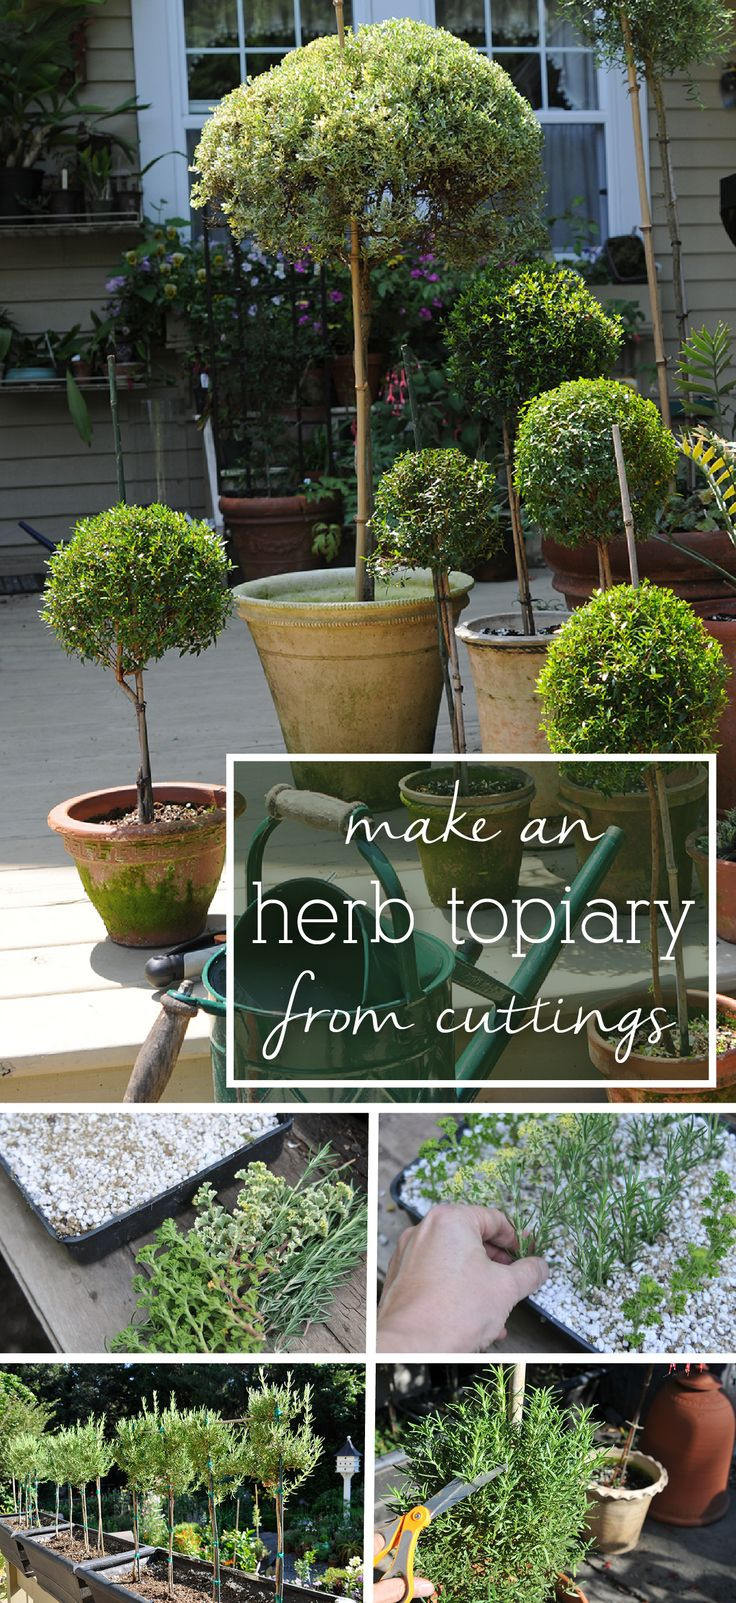 Make a beautiful herb topiary from cuttings! Making your own topiary trees from cuttings taken from the garden is one of the most rewarding projects for a gardener. Shortly before frost arrives, cuttings from lavender, rosemary, scented geranium, woody thyme or fragrant myrtle can be rooted and then trained throughout winter into a treasured topiary. http://www.ehow.com/ehow-home/blog/how-to-make-an-herb-topiary-from-cuttings/?utm_source=pinterest&utm_medium=fanpage&utm_content=blog